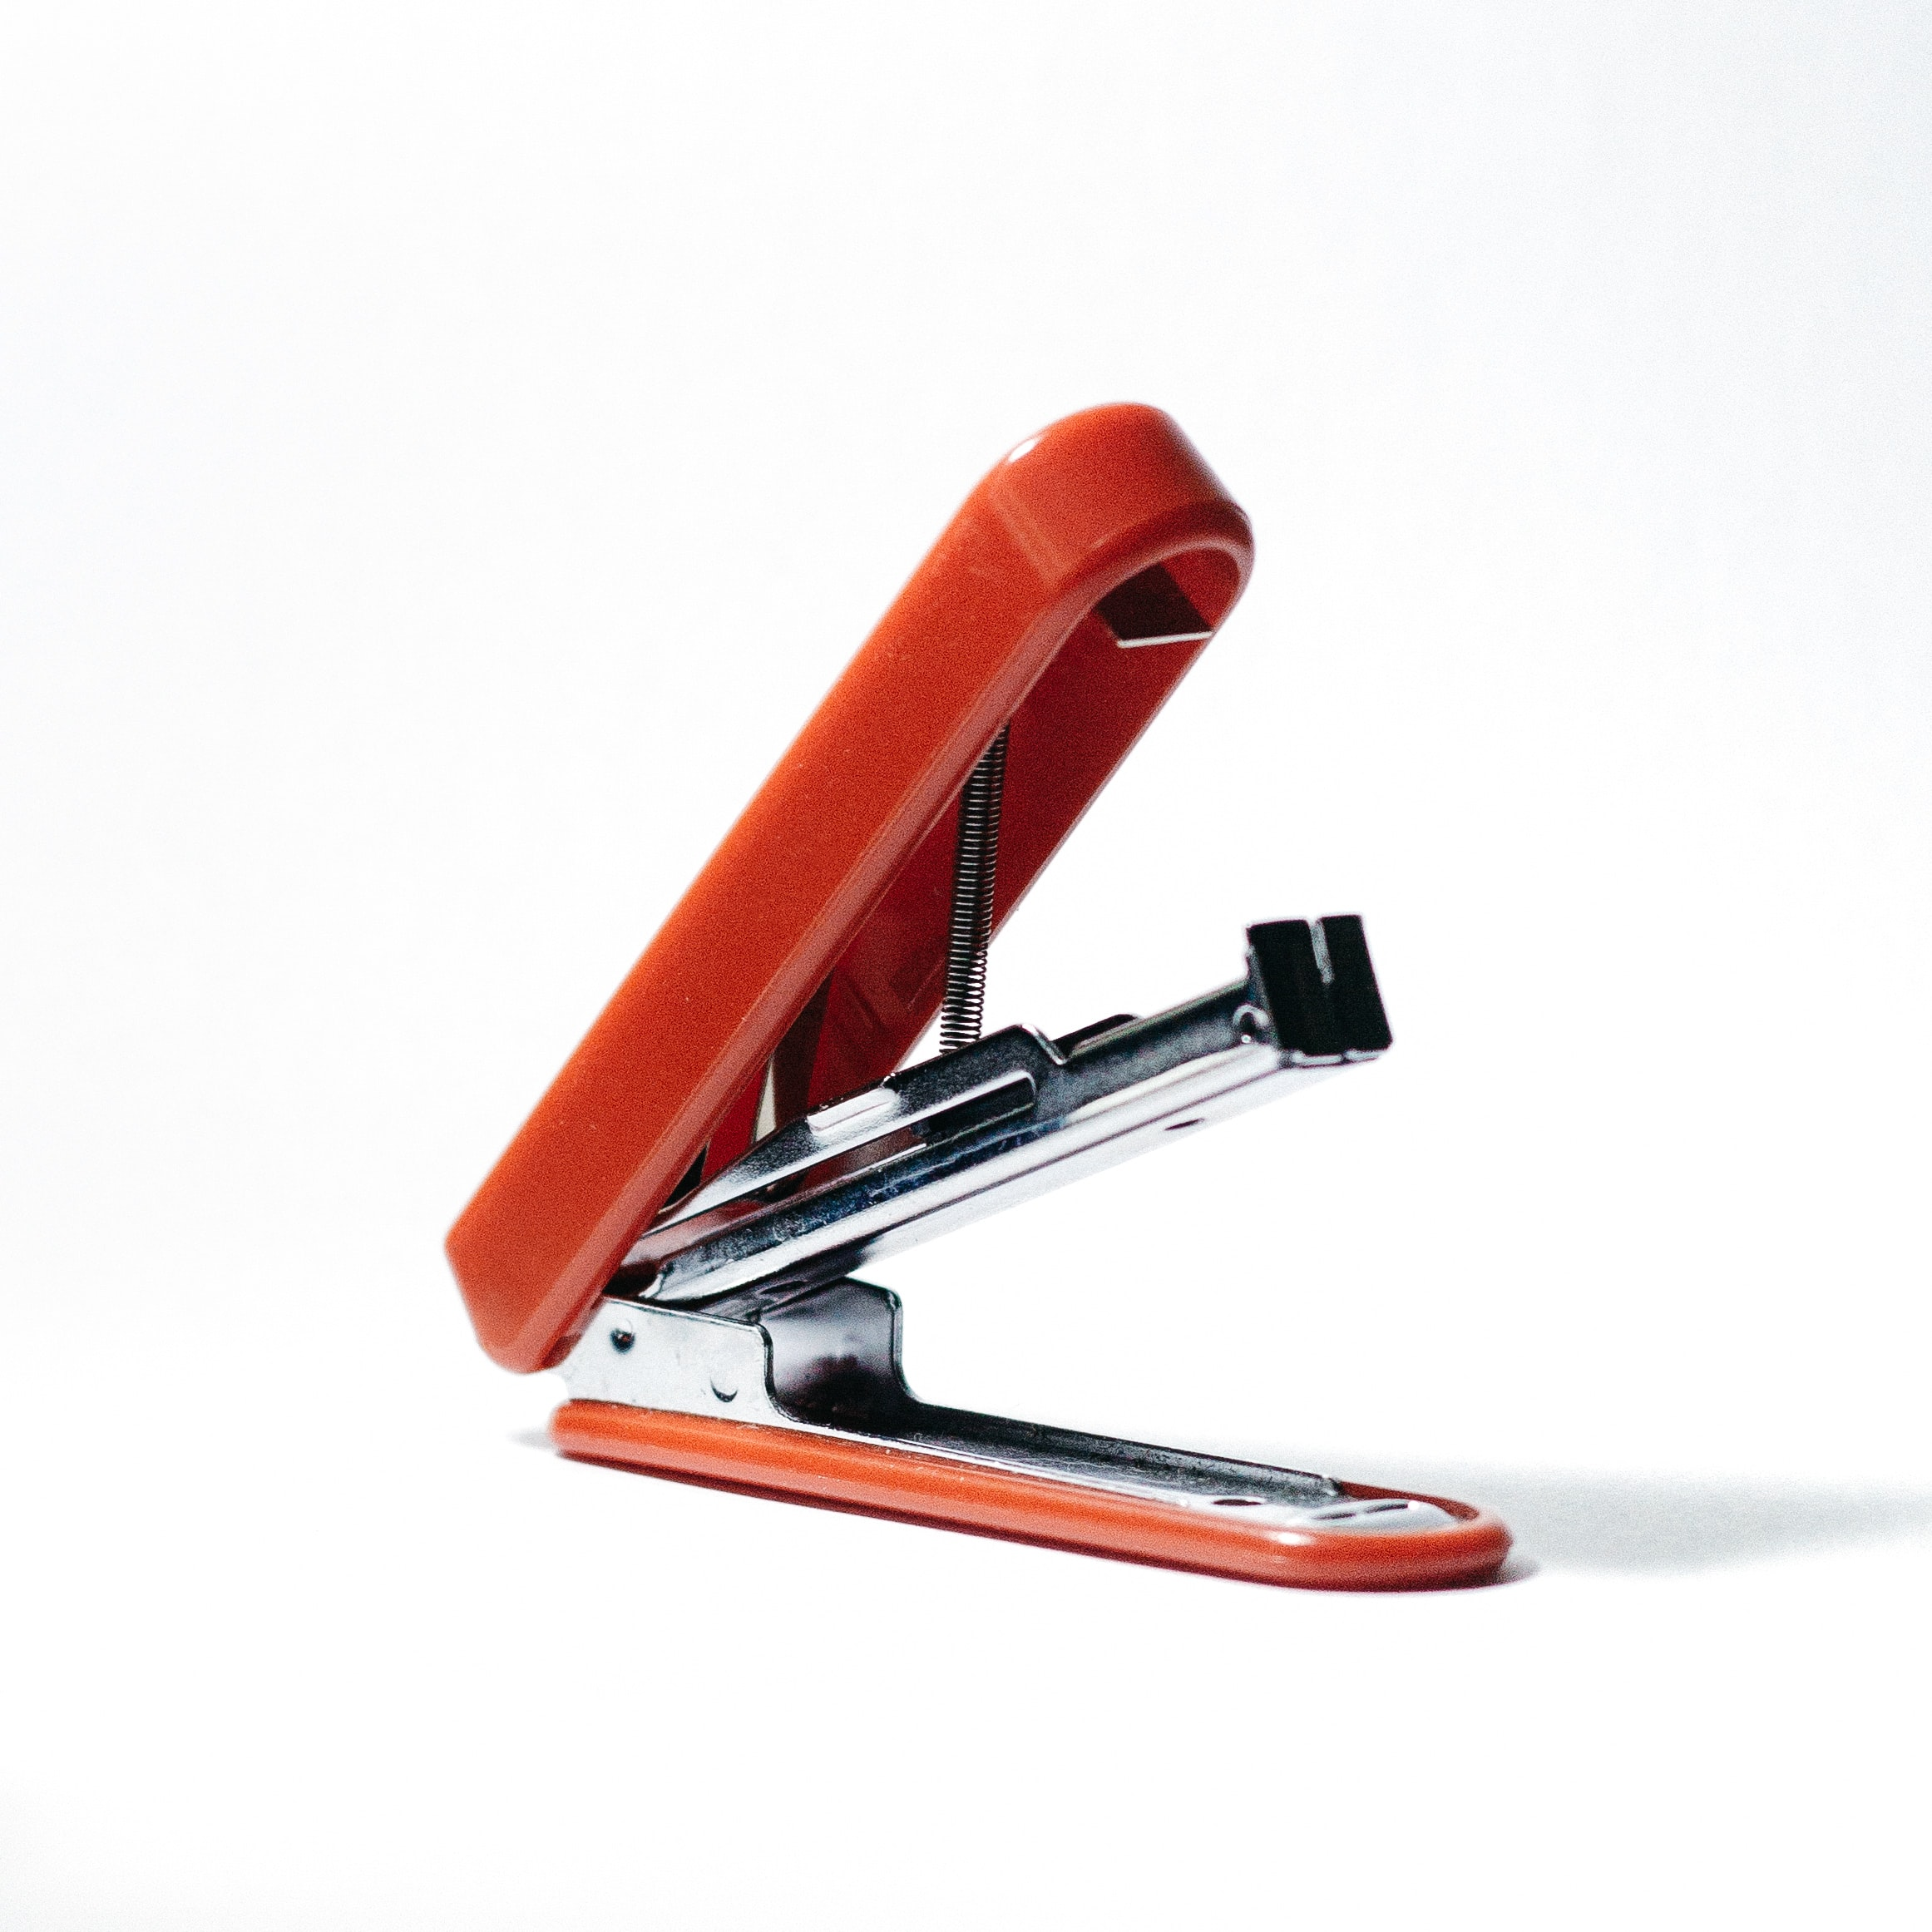 orange stapler opened